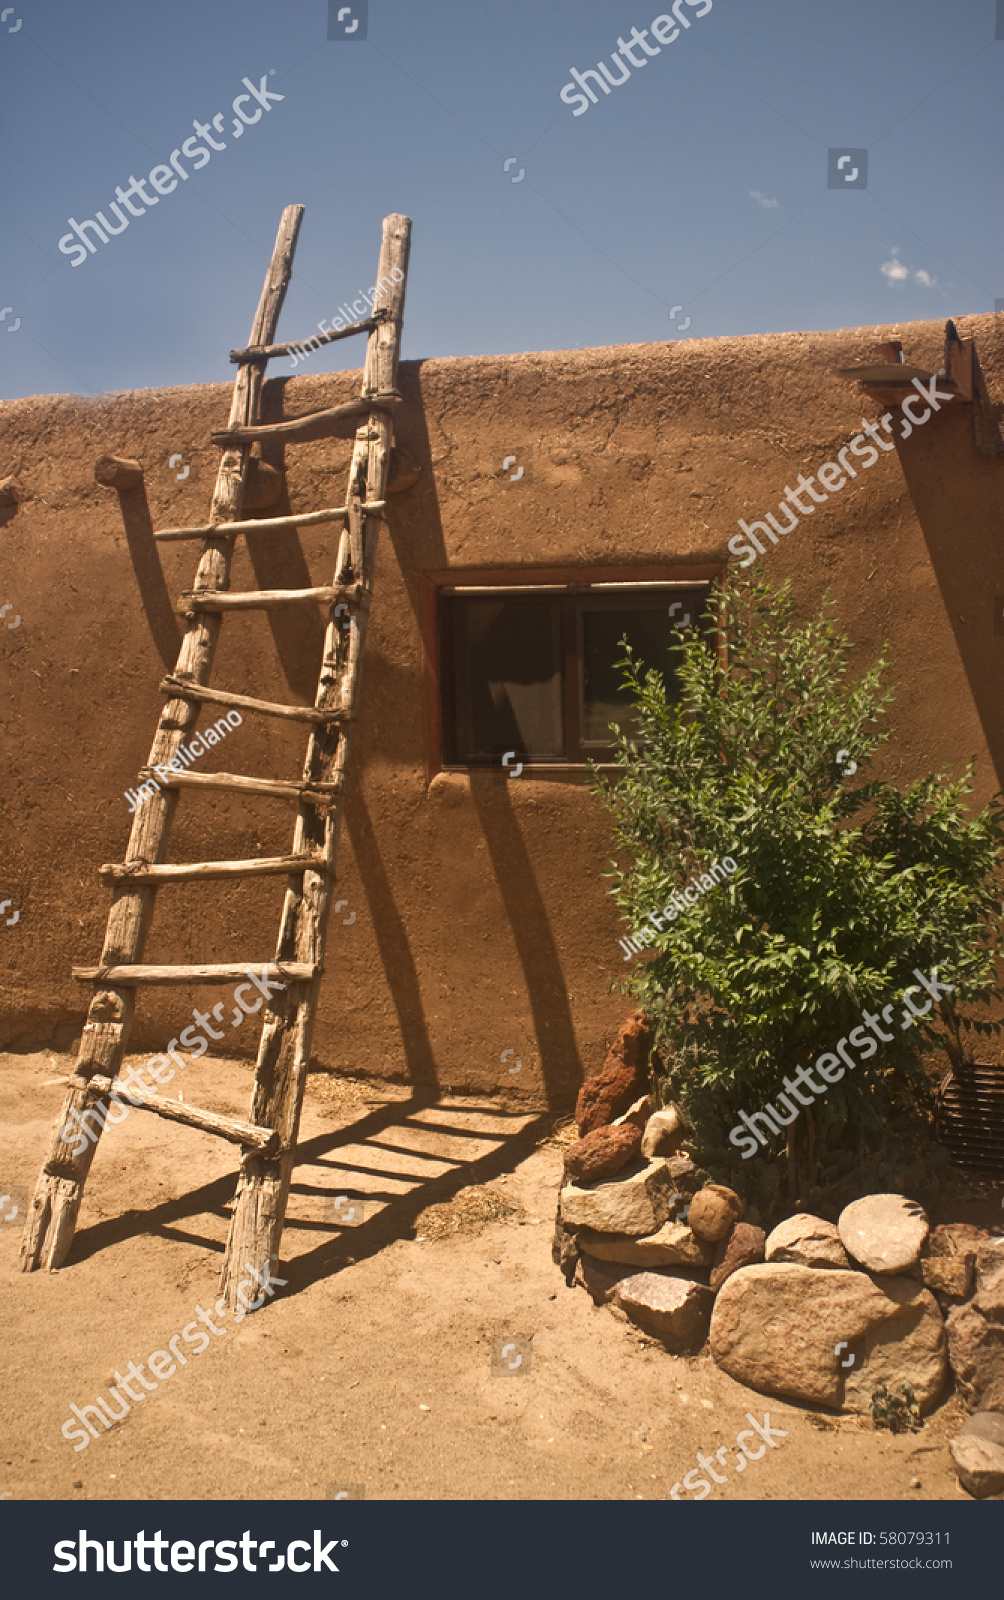 Adobe Dwelling At Taos Pueblo In New Mexico The Oldest